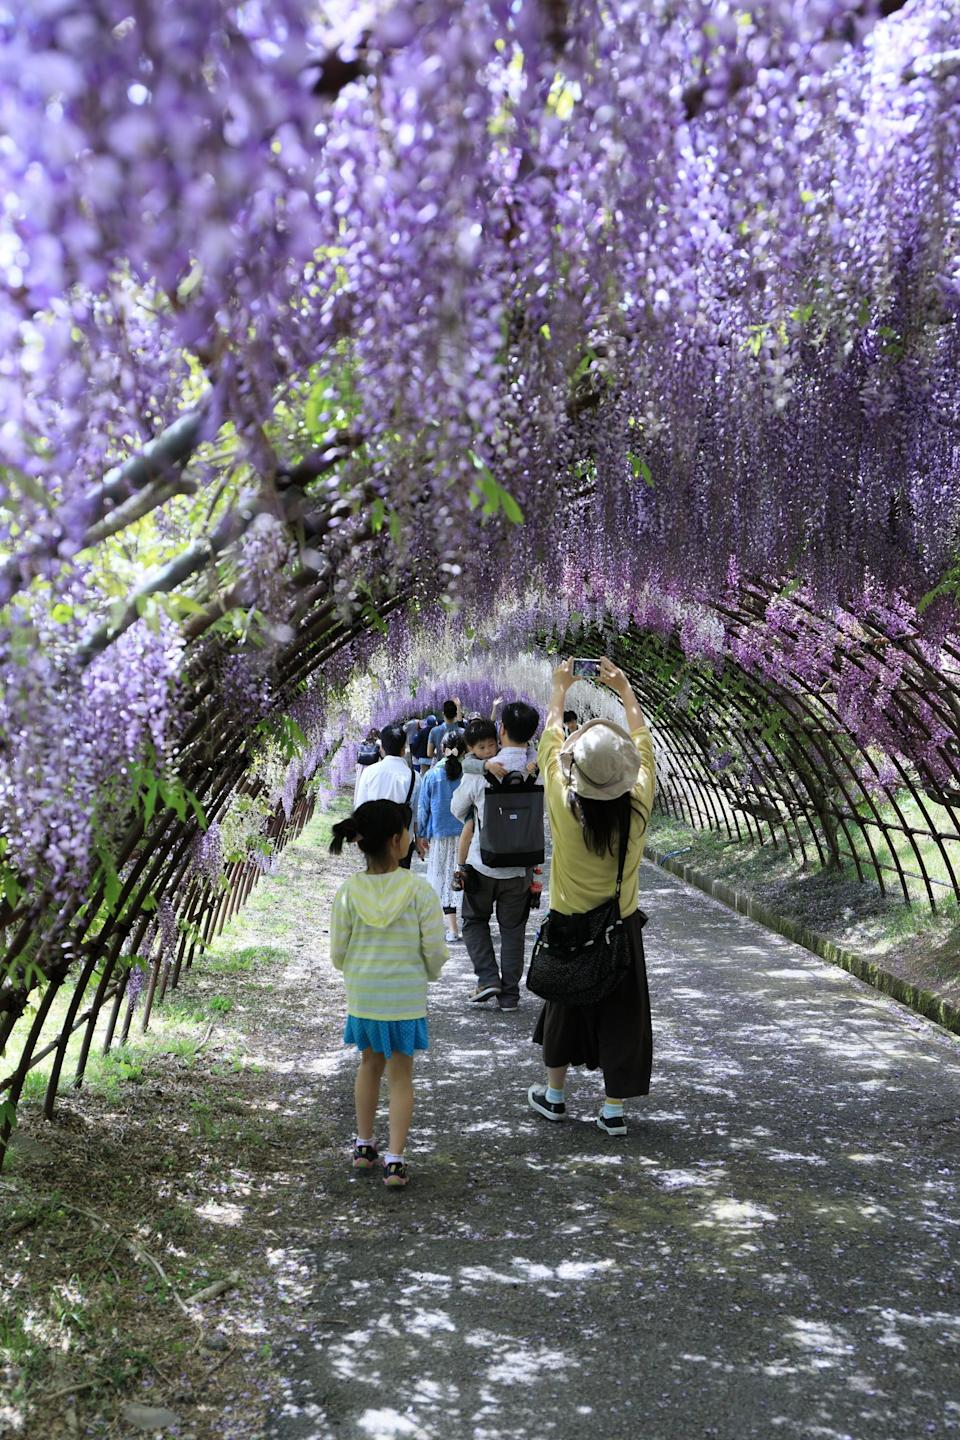 """<p>The <a href=""""https://www.popsugar.com/smart-living/Wisteria-Flower-Tunnels-Japan-43316247"""" class=""""link rapid-noclick-resp"""" rel=""""nofollow noopener"""" target=""""_blank"""" data-ylk=""""slk:wisteria flower tunnels"""">wisteria flower tunnels</a> in Kawachi Fuji Gardens are beautiful structures to take a stroll through. </p>"""